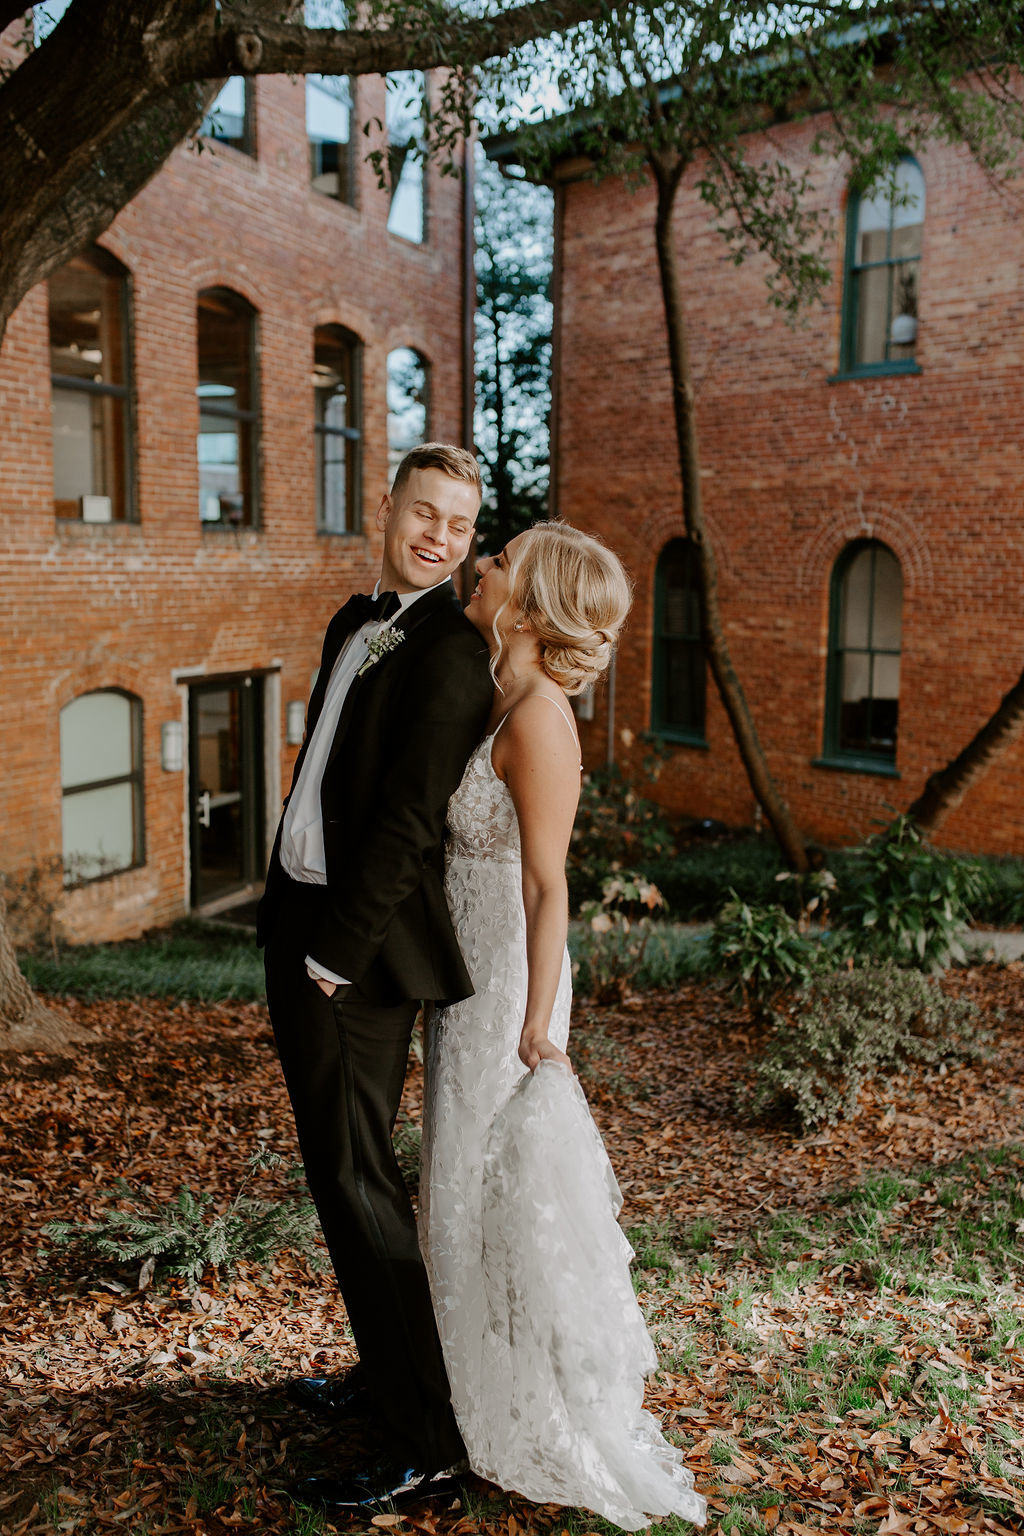 clink-events-greenville-wedding-planner-25